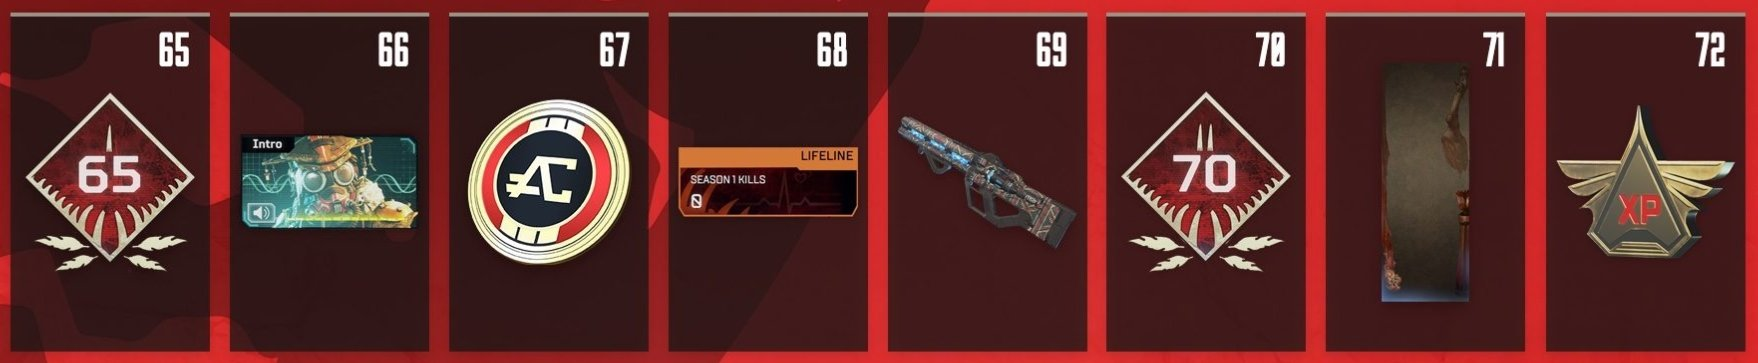 Apex Legends Battle Pass Rewards Levels 65-72